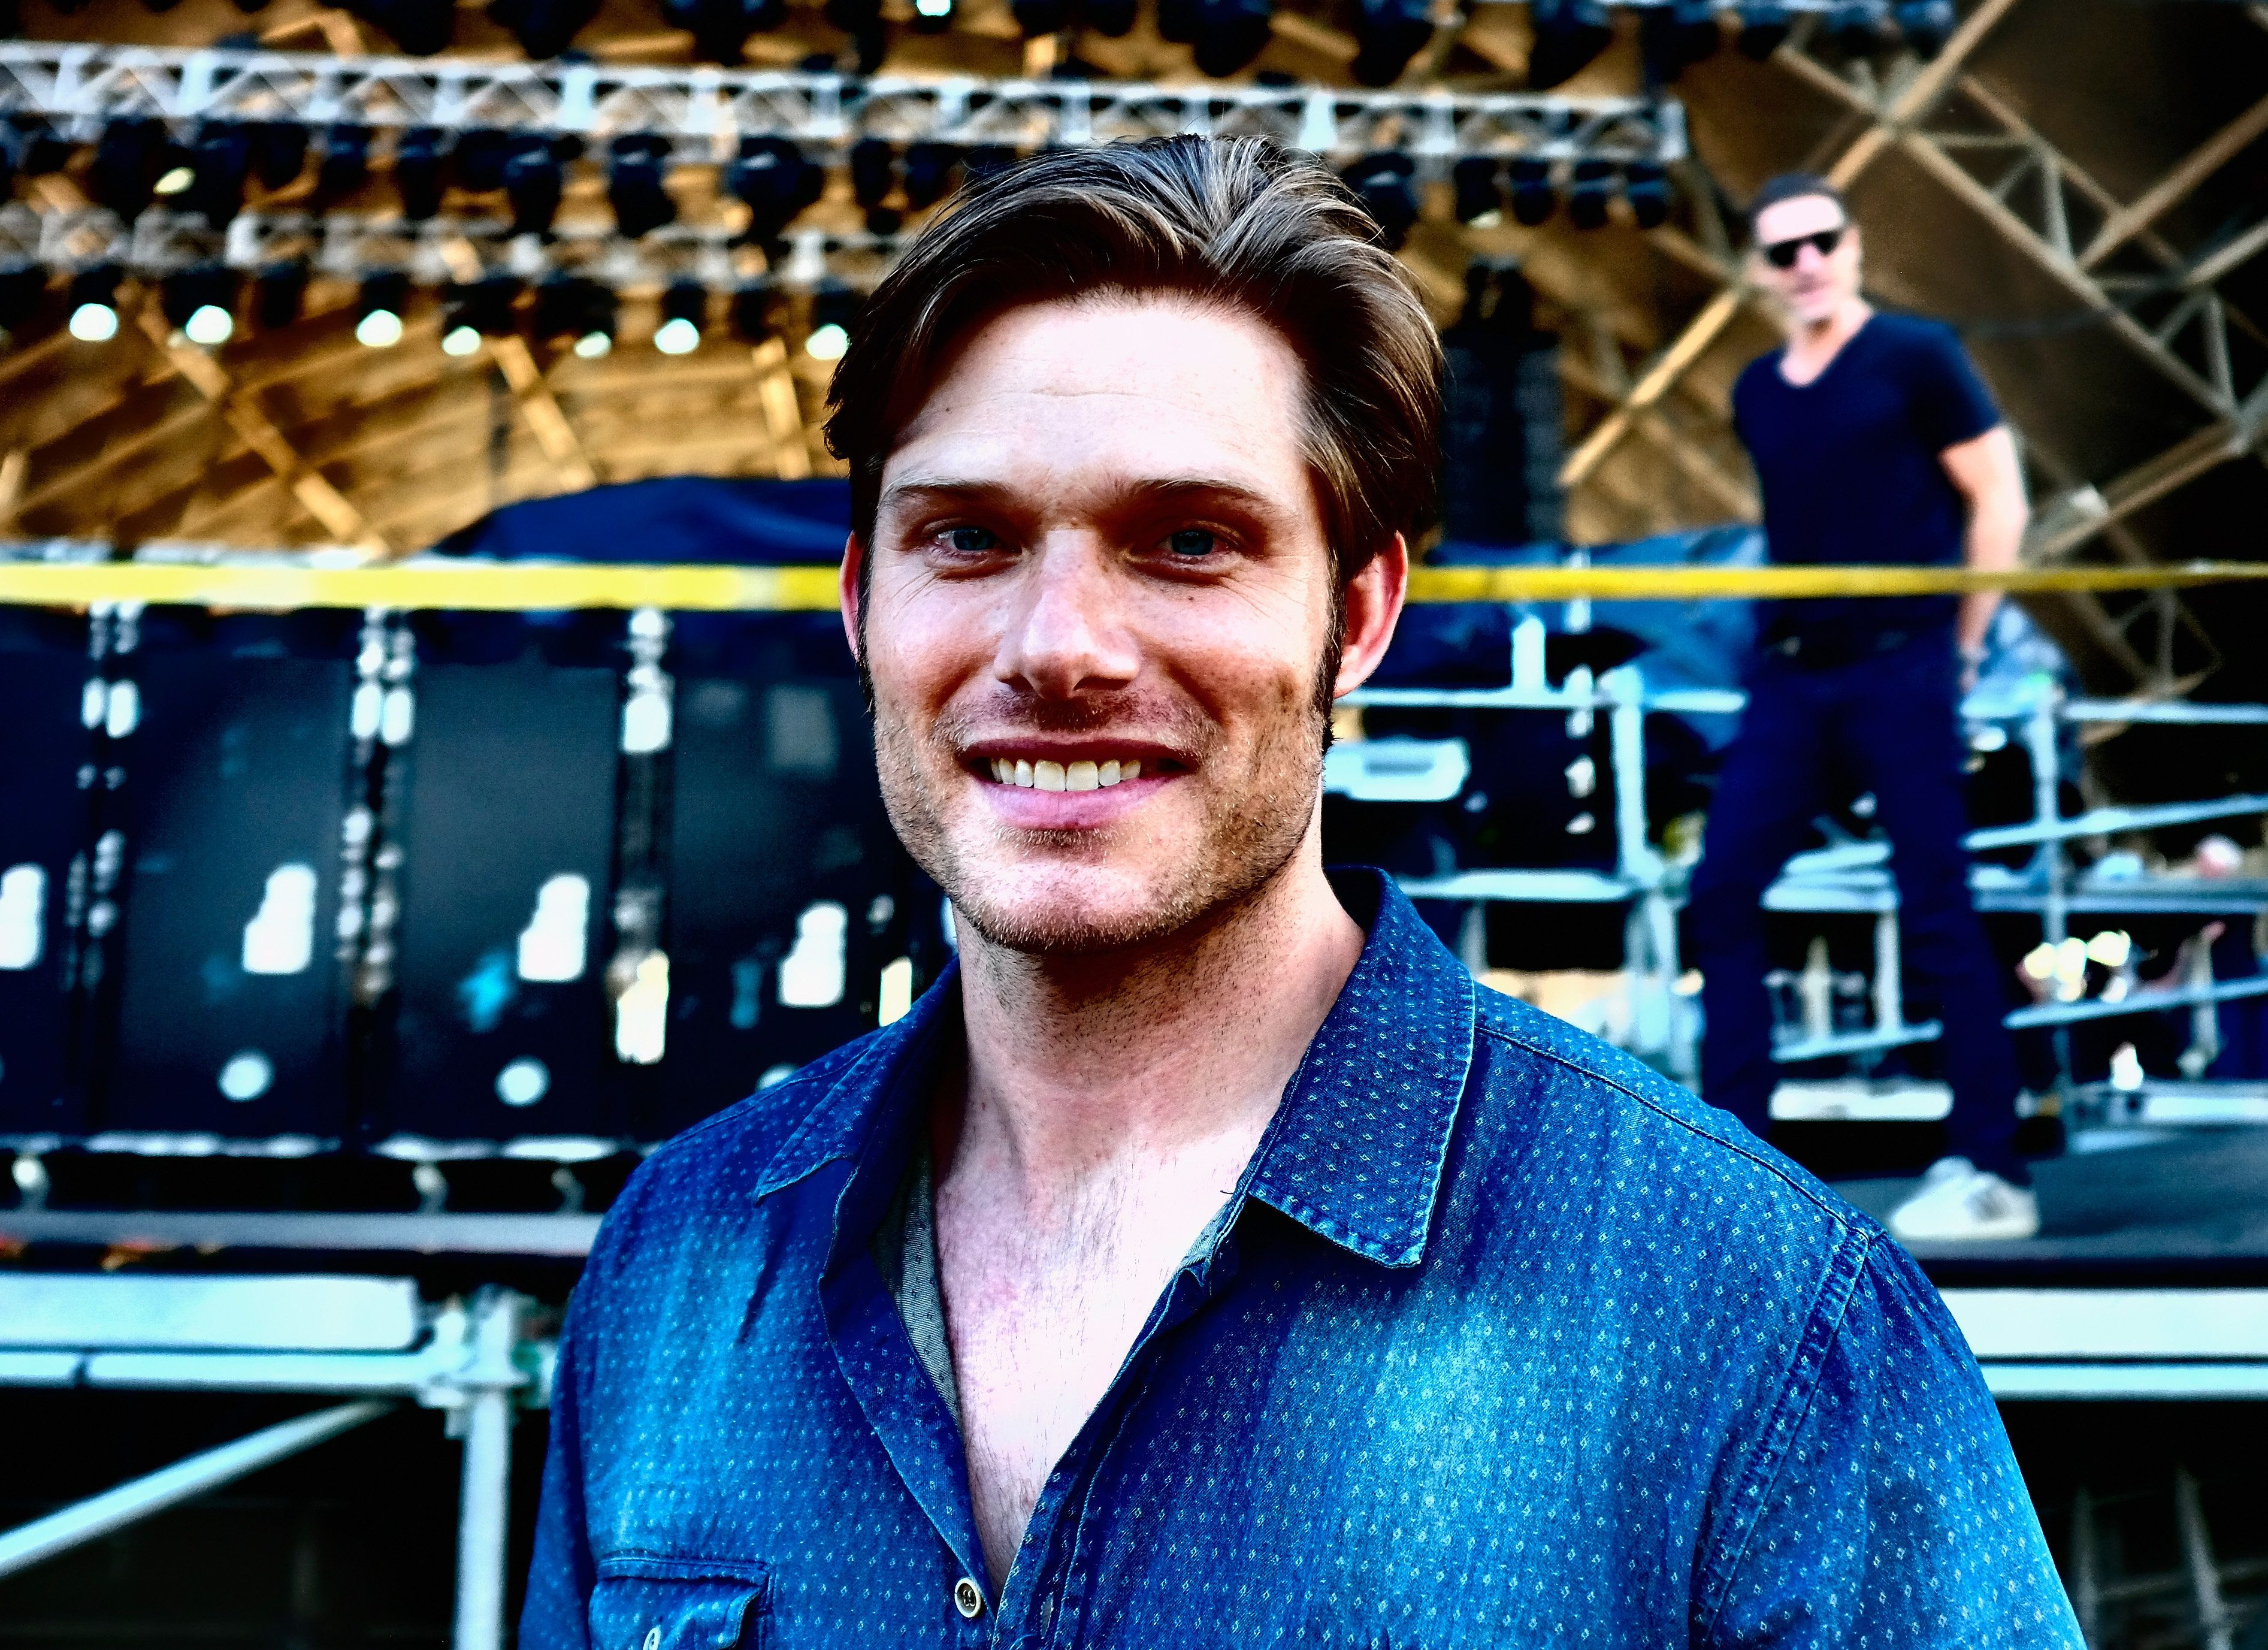 INDIO, CA - APRIL 26:  ( Editors Note; Image created using incamera filtes). Musician Chris Carmack attends The 2015 Stagecoach California's Country Music Festival at The Empire Polo Club on April 25, 2015 in Indio, California.  (Photo by Frazer Harrison/Getty Images for Stagecoach)